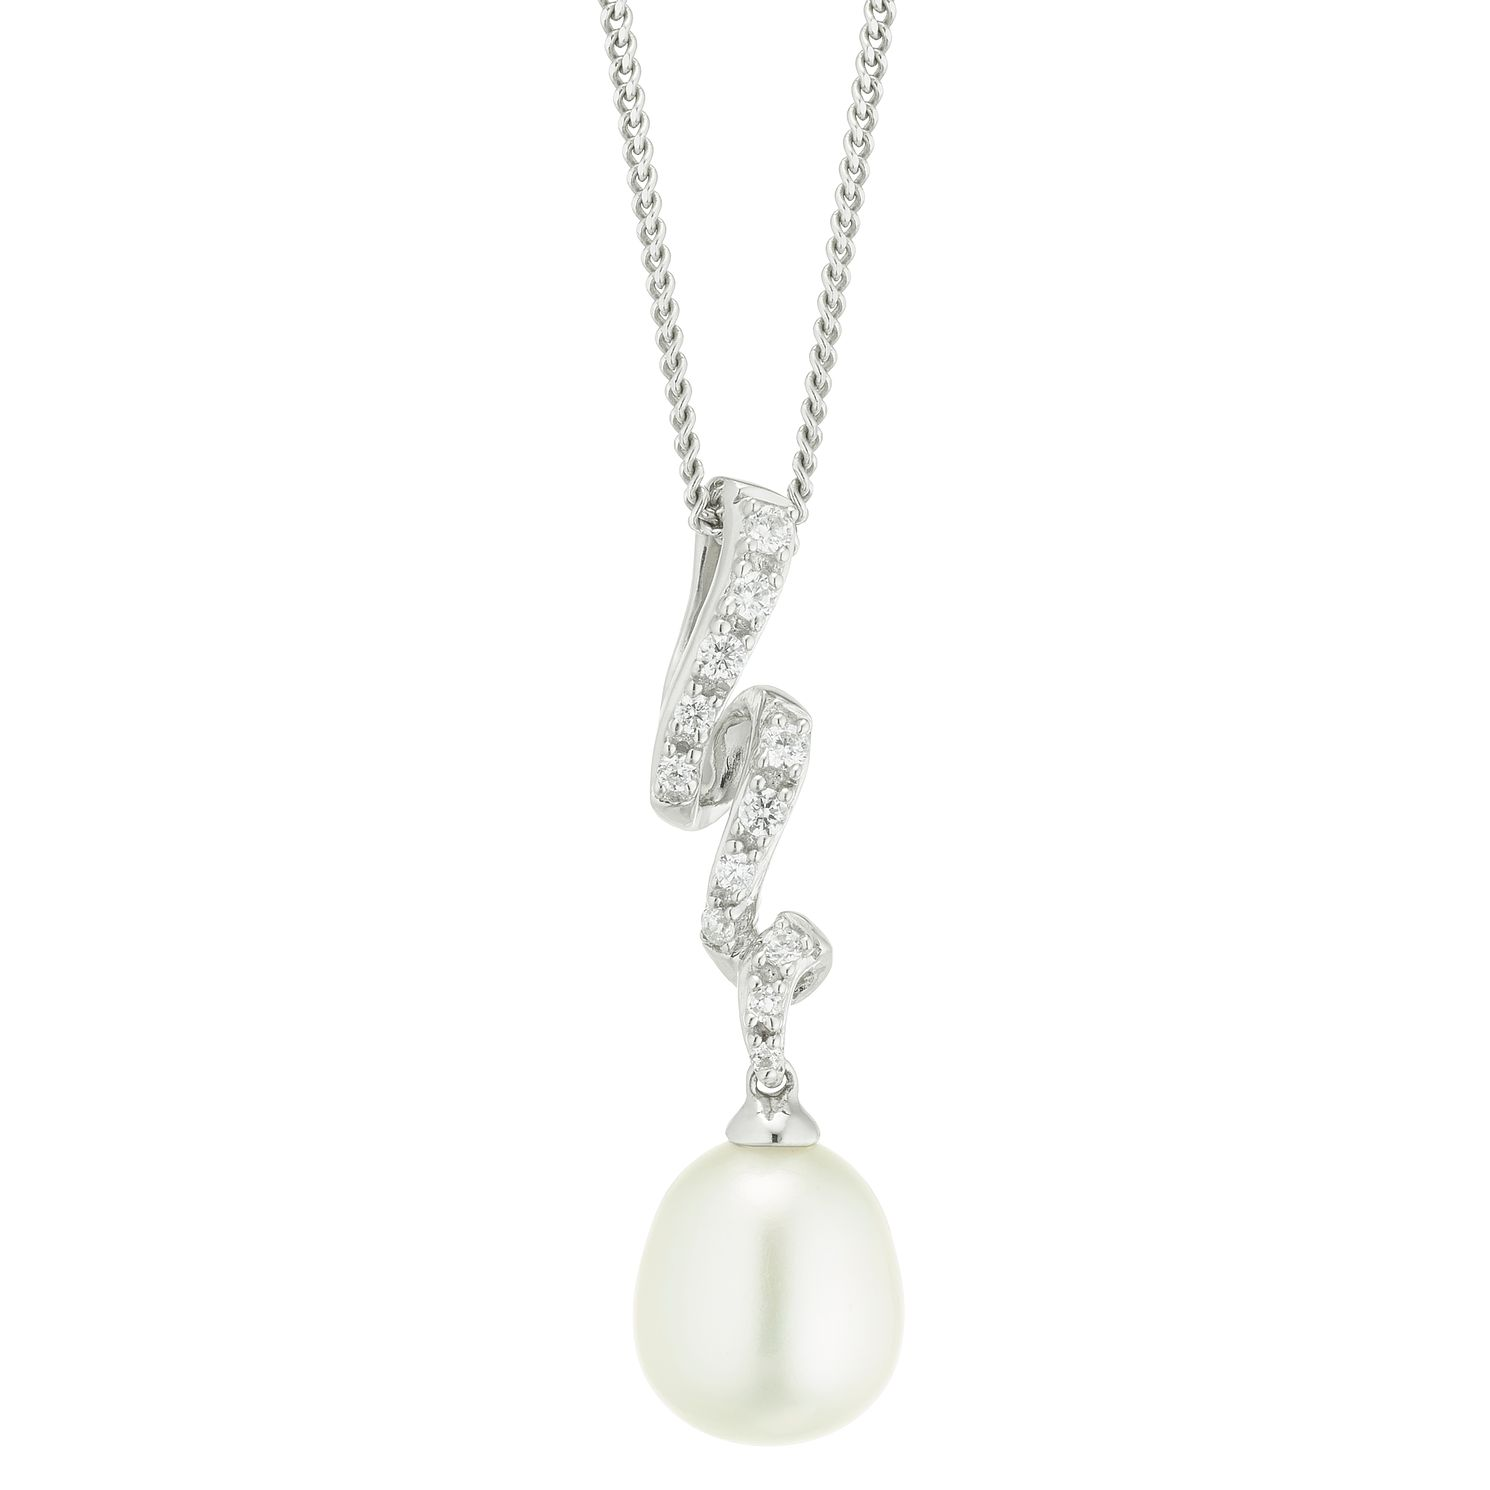 Silver Cultured Freshwater Pearl & Cubic Zirconia Pendant - Product number 4626664